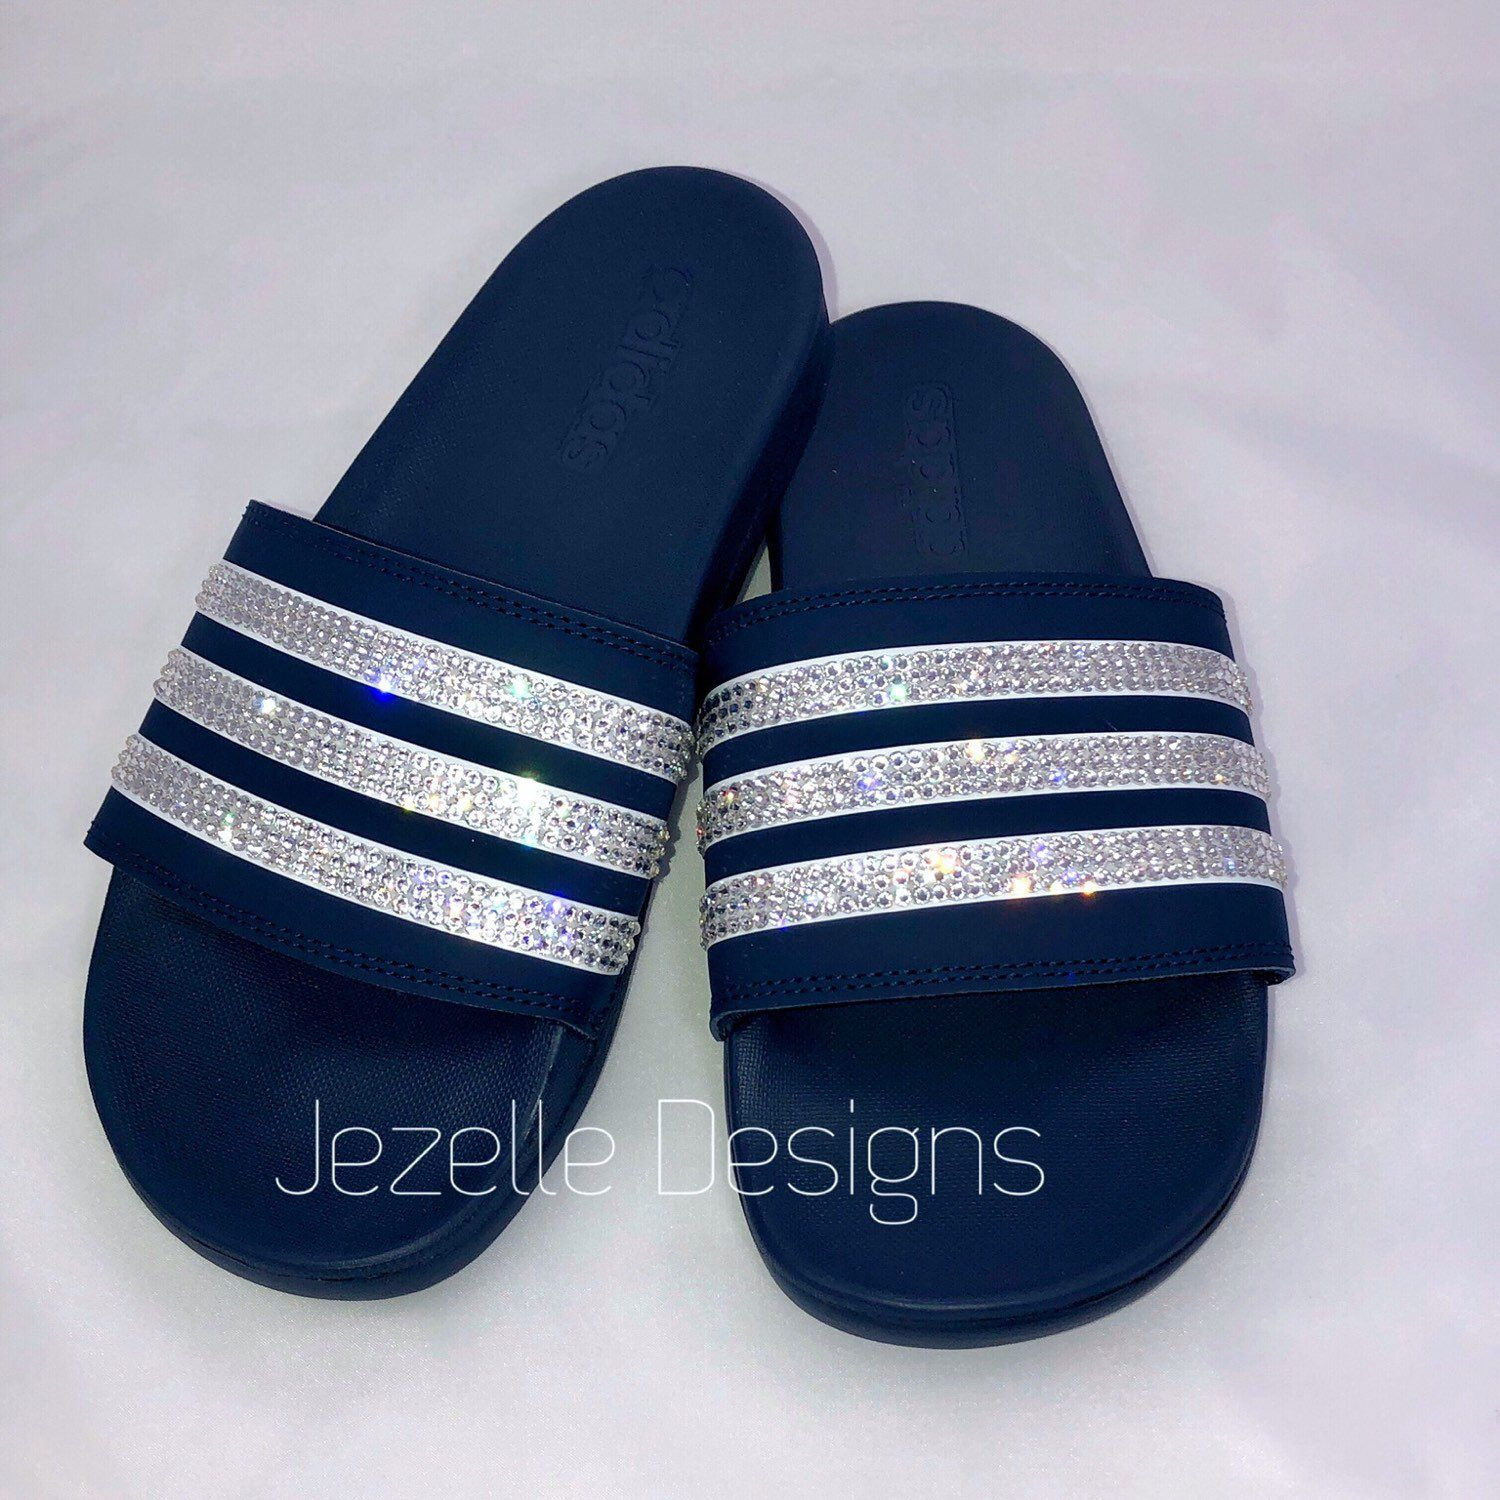 cefda3fa424a Bling Adidas Slide Sandals - Super Cushy! Amazingly Comfortable ...